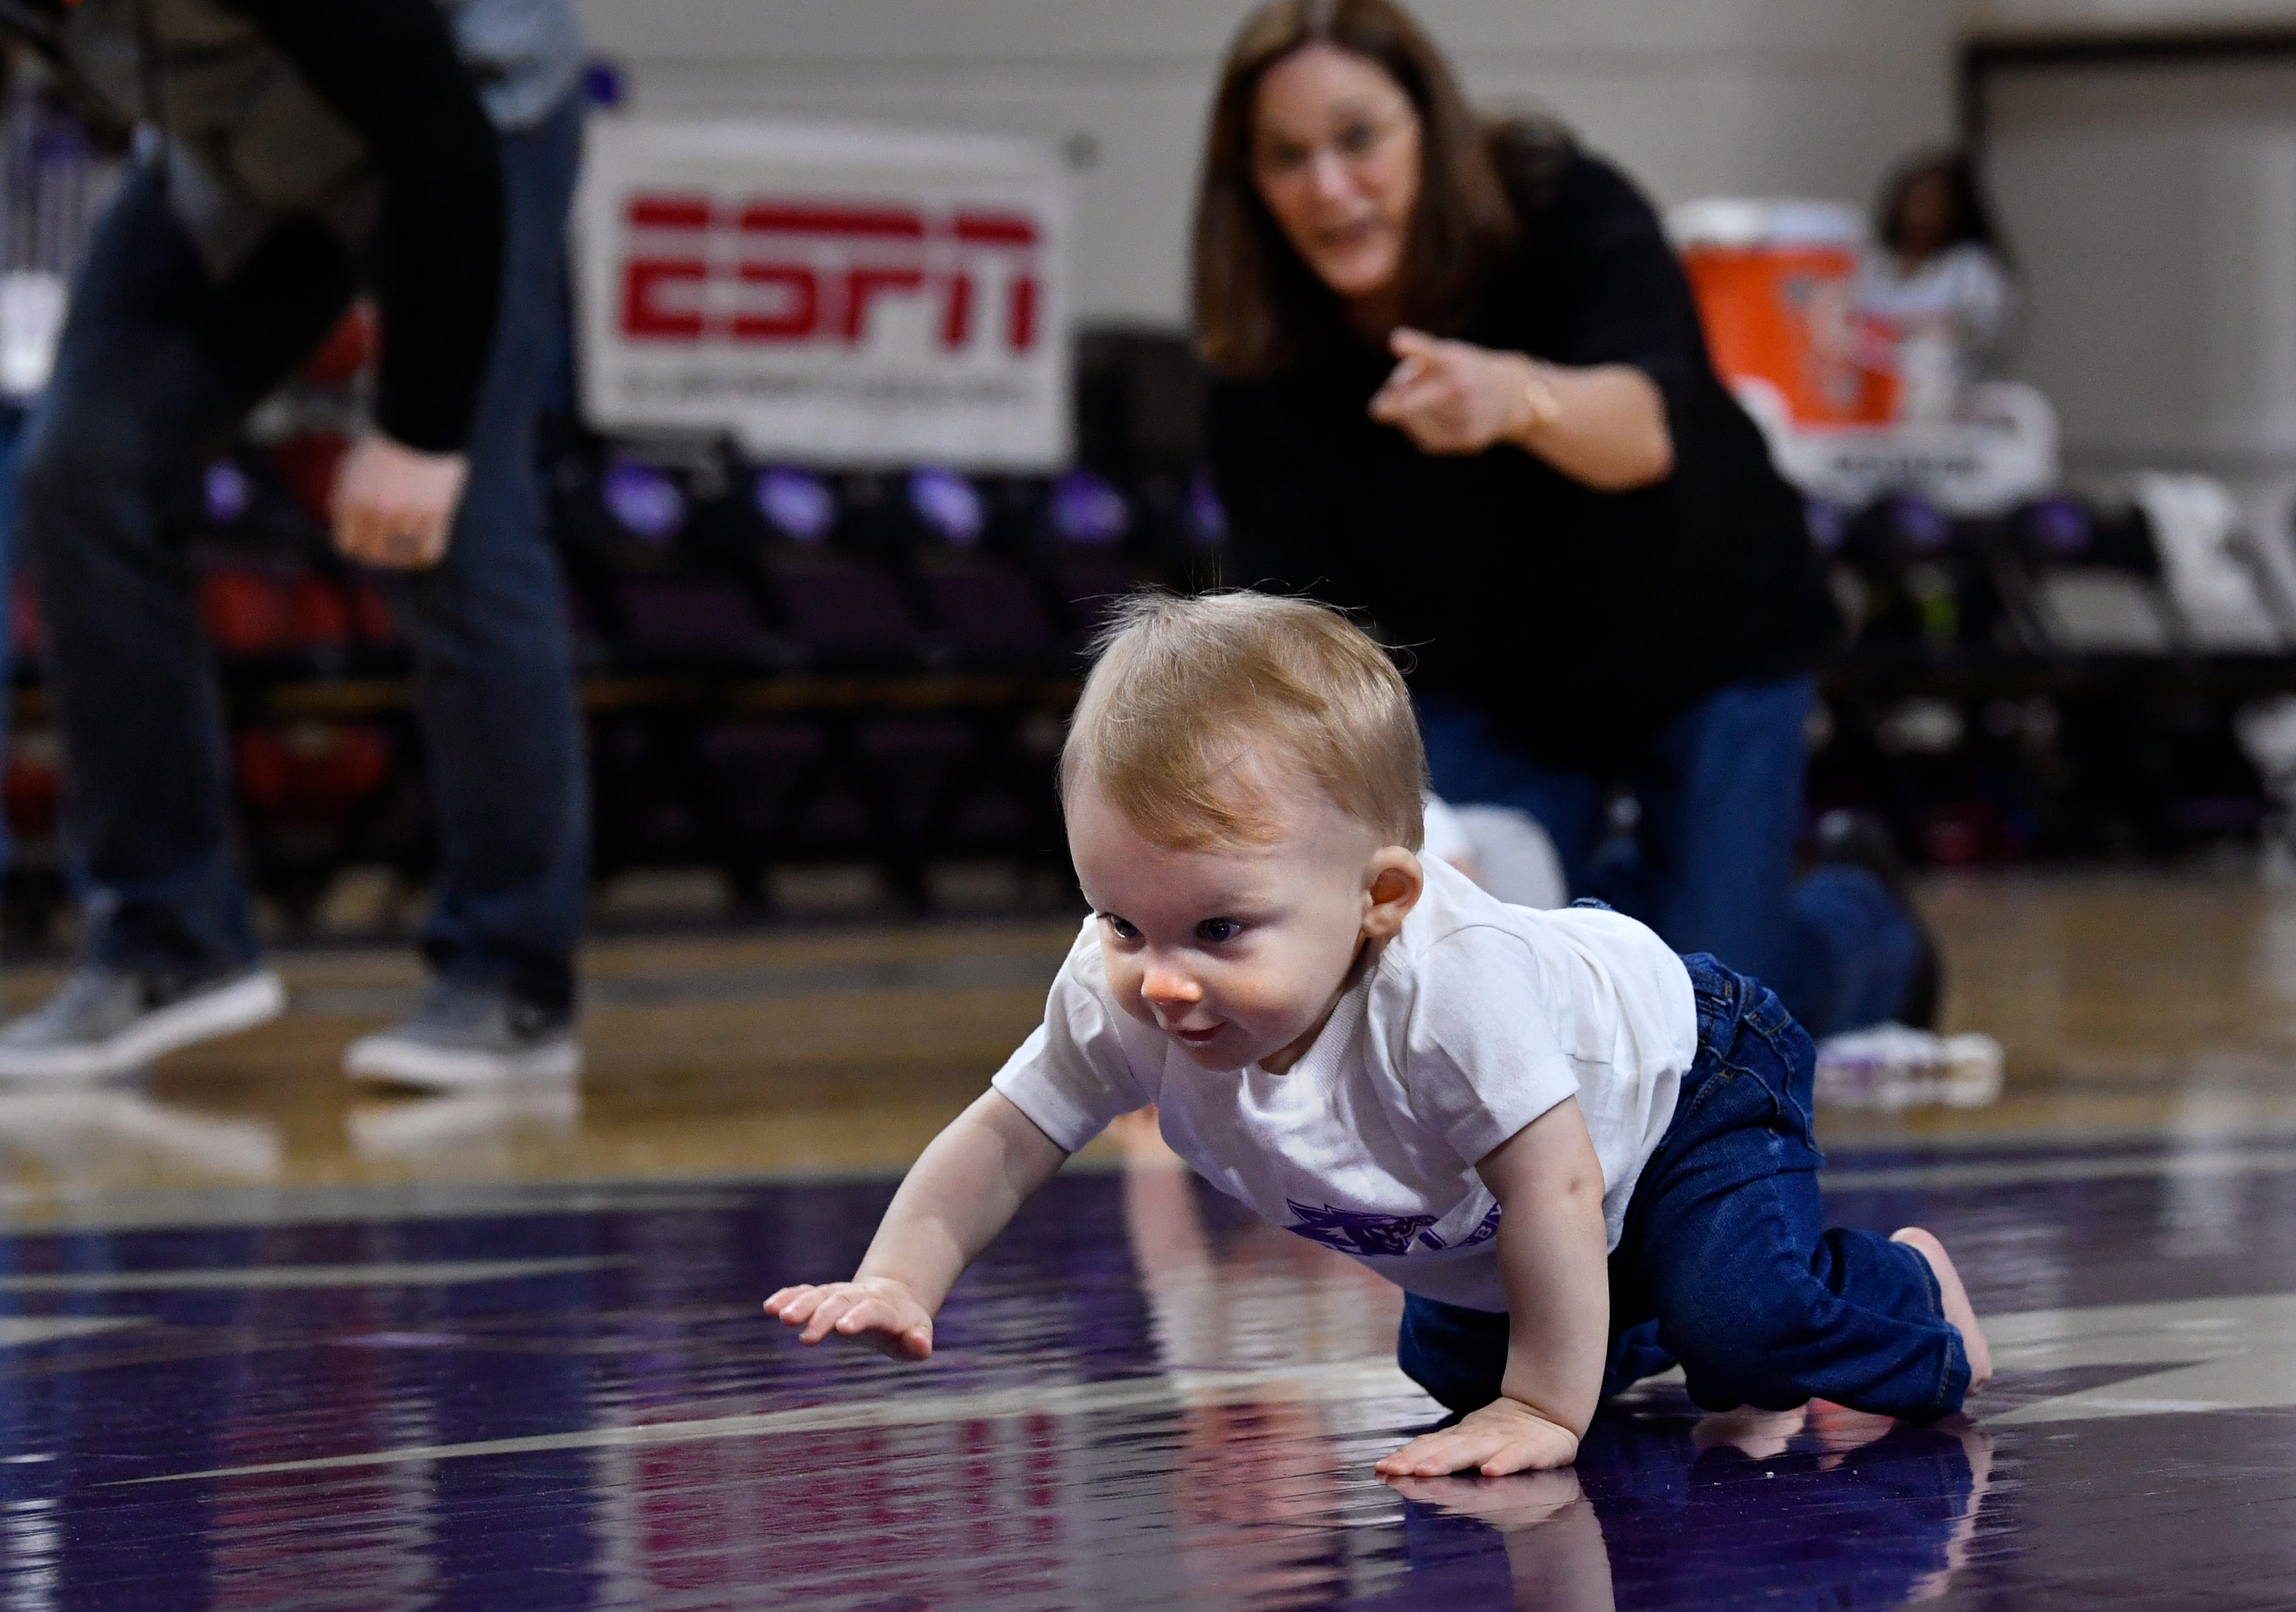 Oliver Glover crawls across the court at Moody Coliseum toward his mother Kaytlin on Jan. 26. Abilene Christian University held a Diaper Derby during halftime at both men's and women's basketball games.